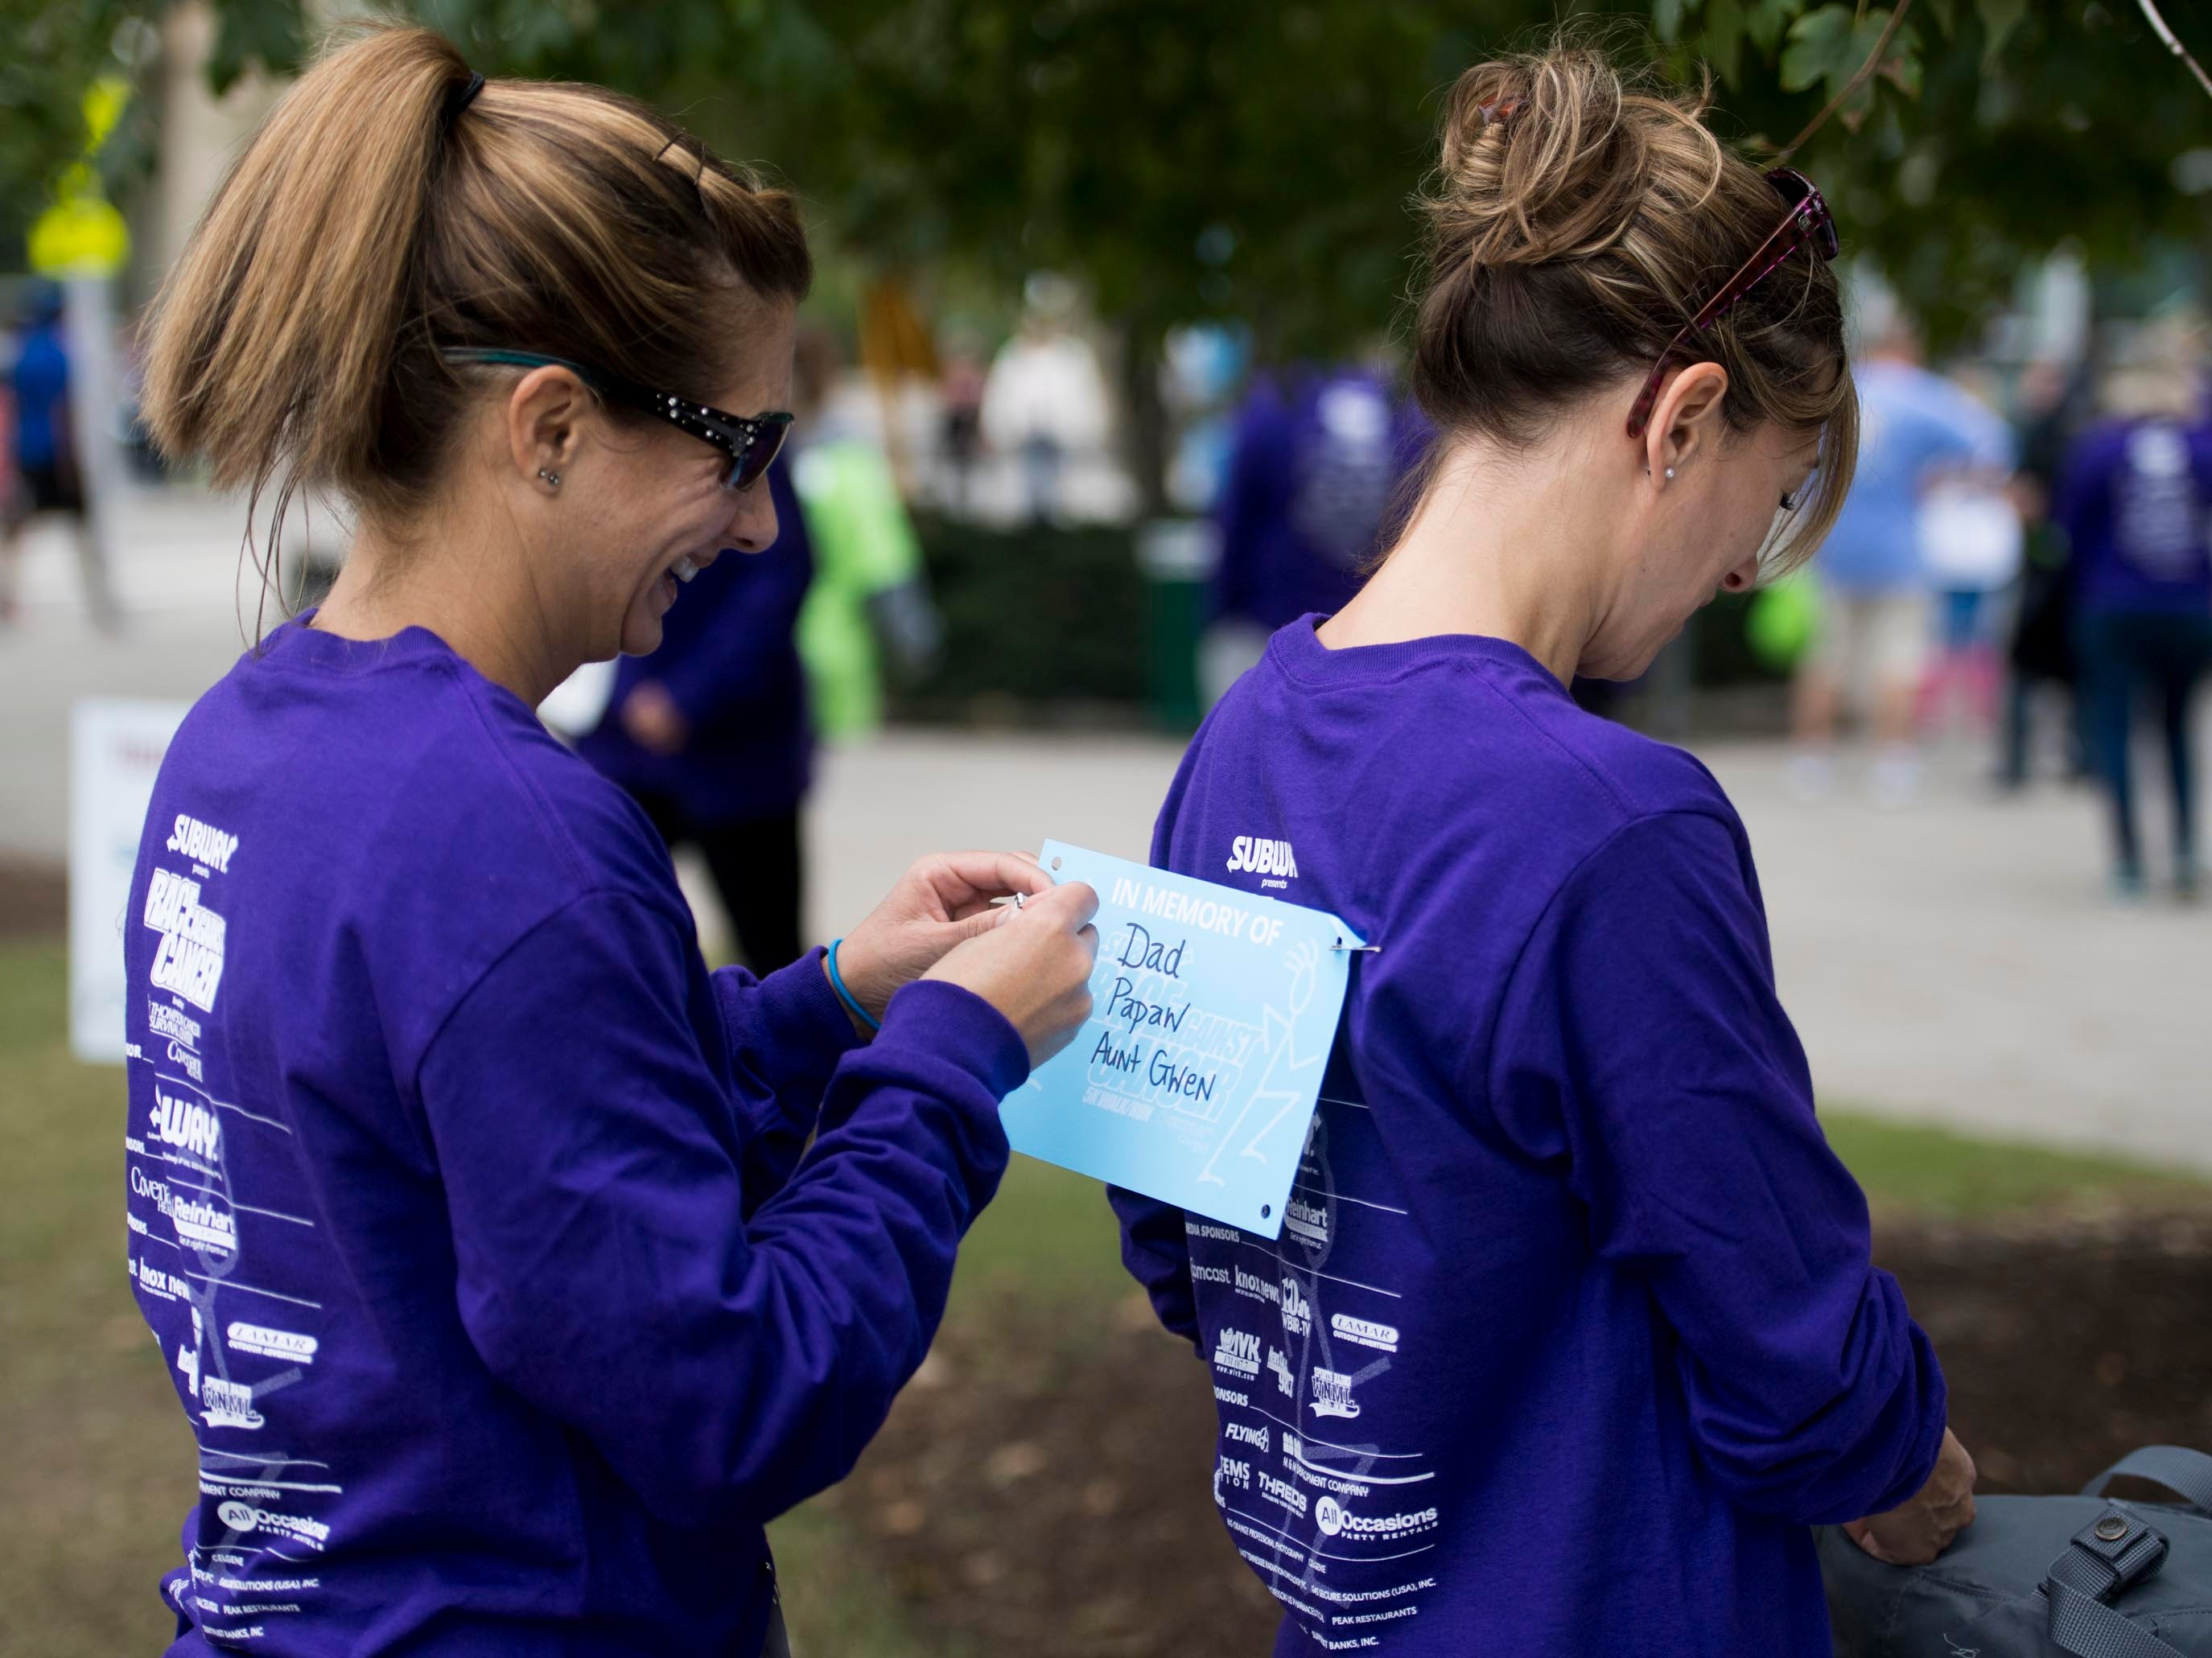 Erika Nickless and Kristin Kerr prepare to run in Covenant Health's Subway Race Against Cancer at World's Fair Park on Sunday, October 14, 2018. On Nickless back is a sign recognizing her father Daryl Kerr, grandfather William Kerr, and and Gwen Lynn.